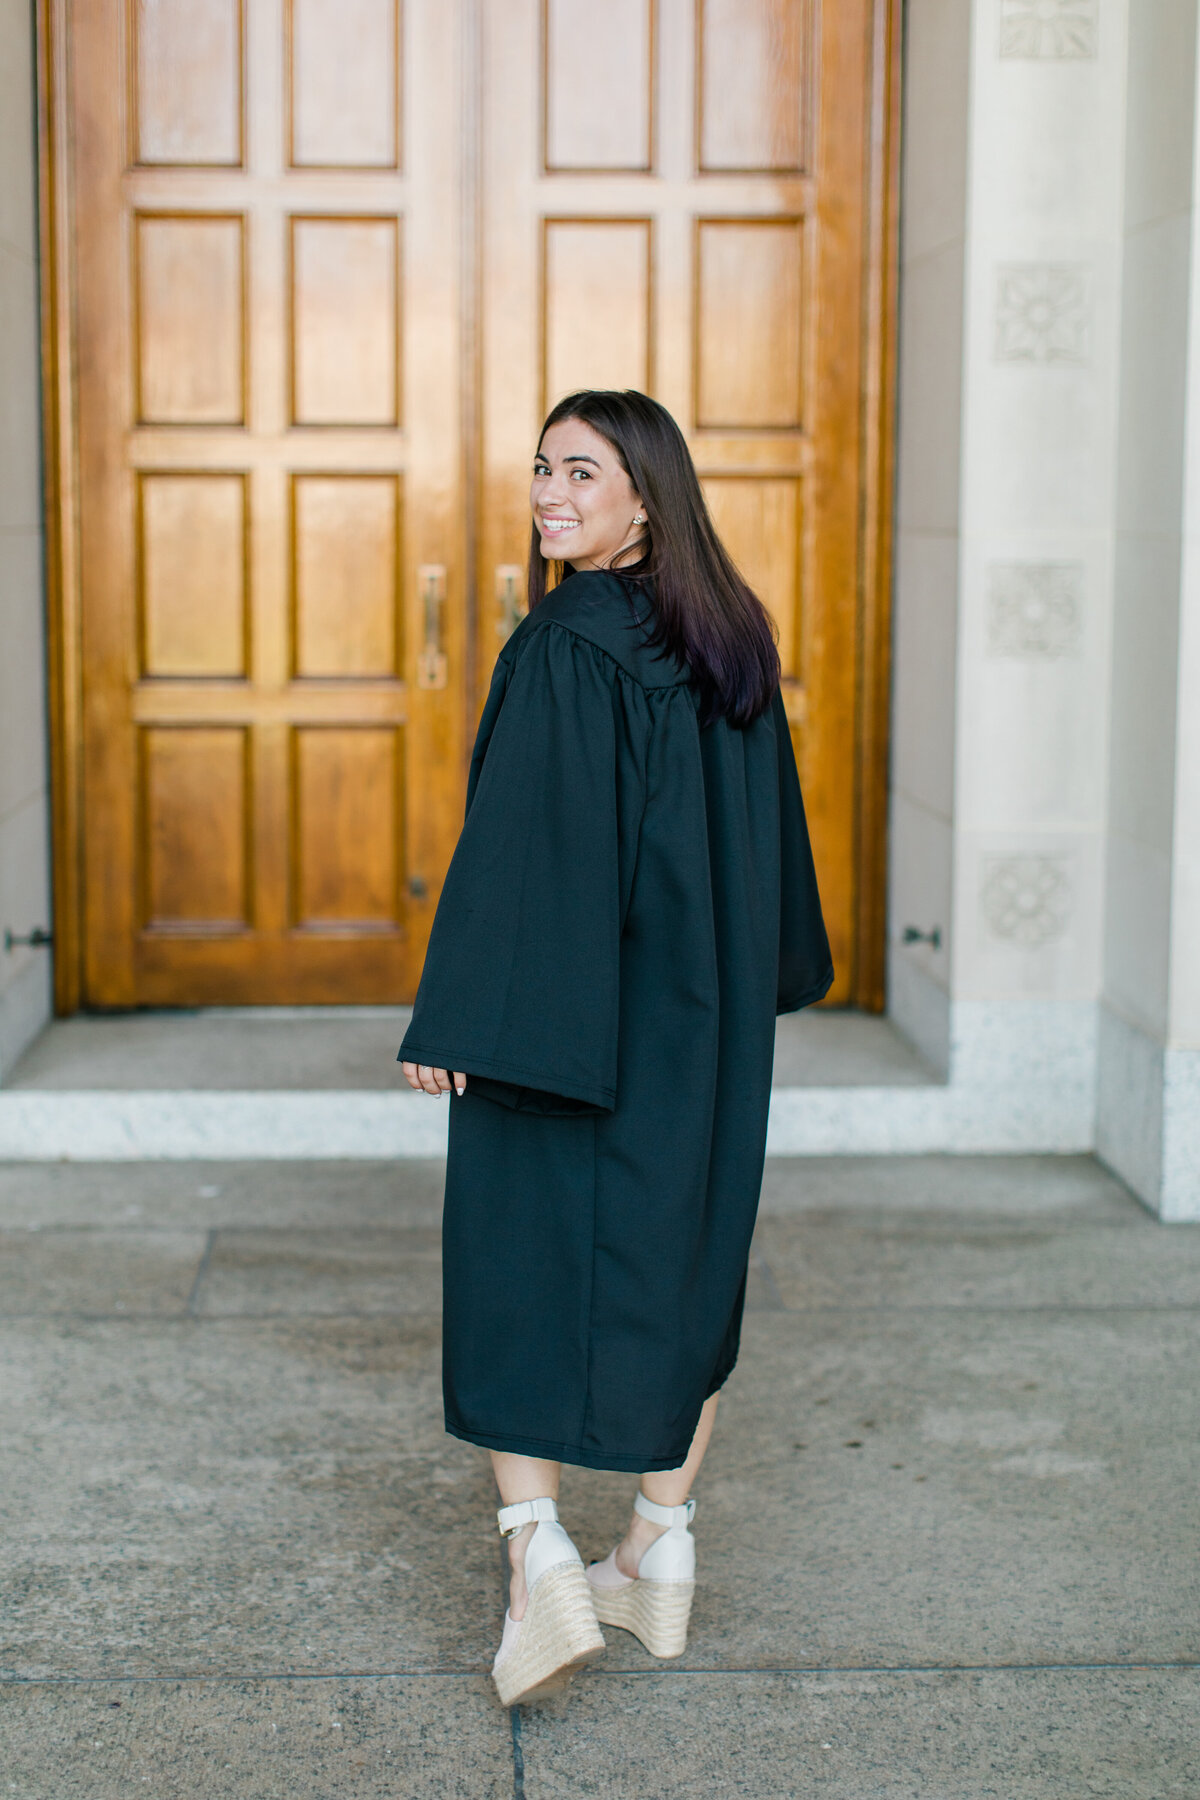 Catholic_University_CUA_Senior_Graduation_Session_2020_Angelika_Johns_Photography-4553